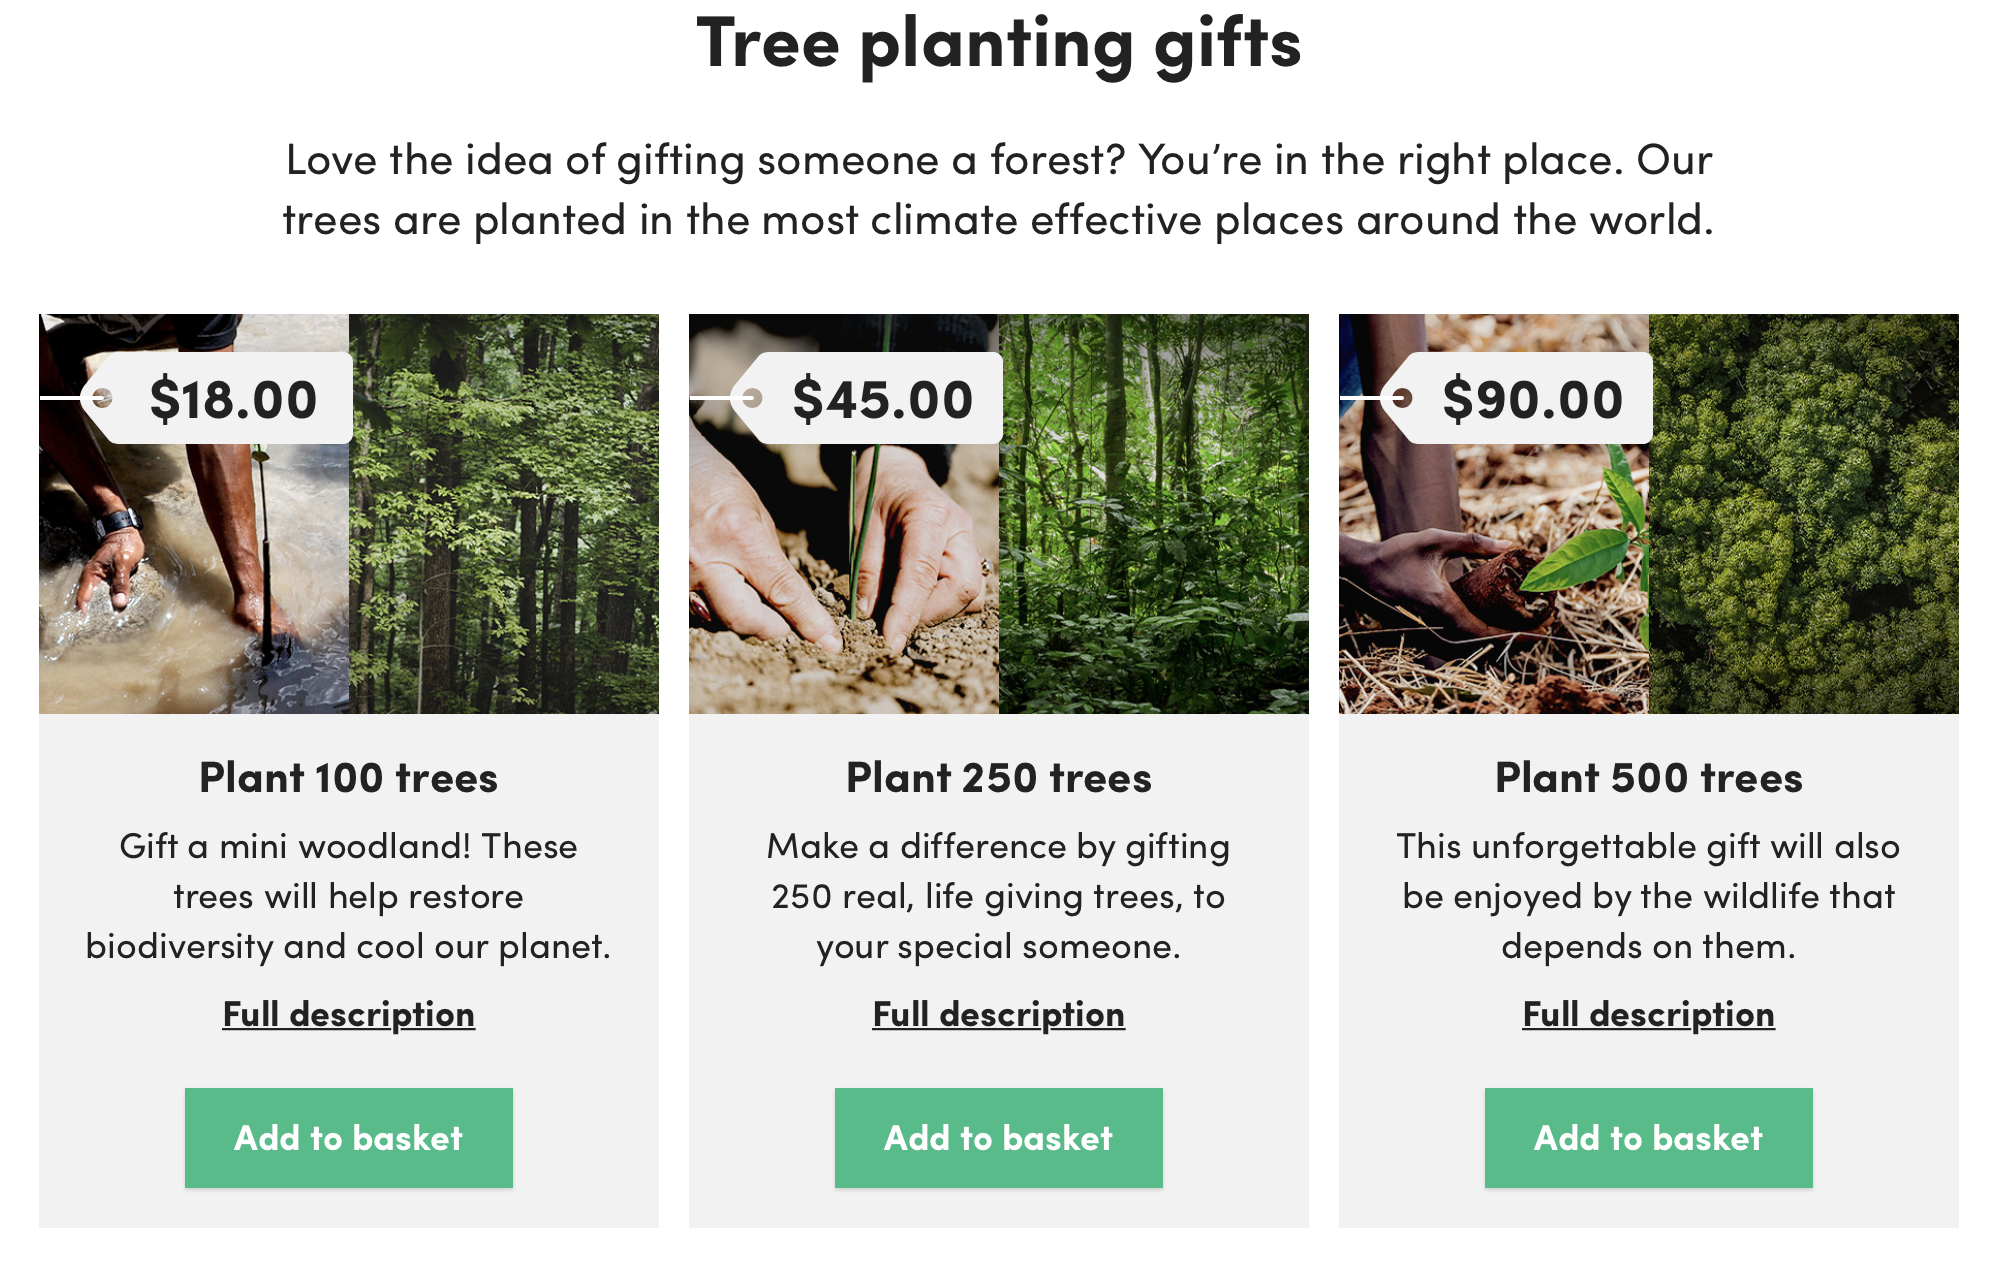 Have you ever thought about offsetting your carbon footprint? Ecologi is a great way to do that. You can offset your carbon footprint by paying for the planting of trees in big clumps or by a monthly or yearly subscription.